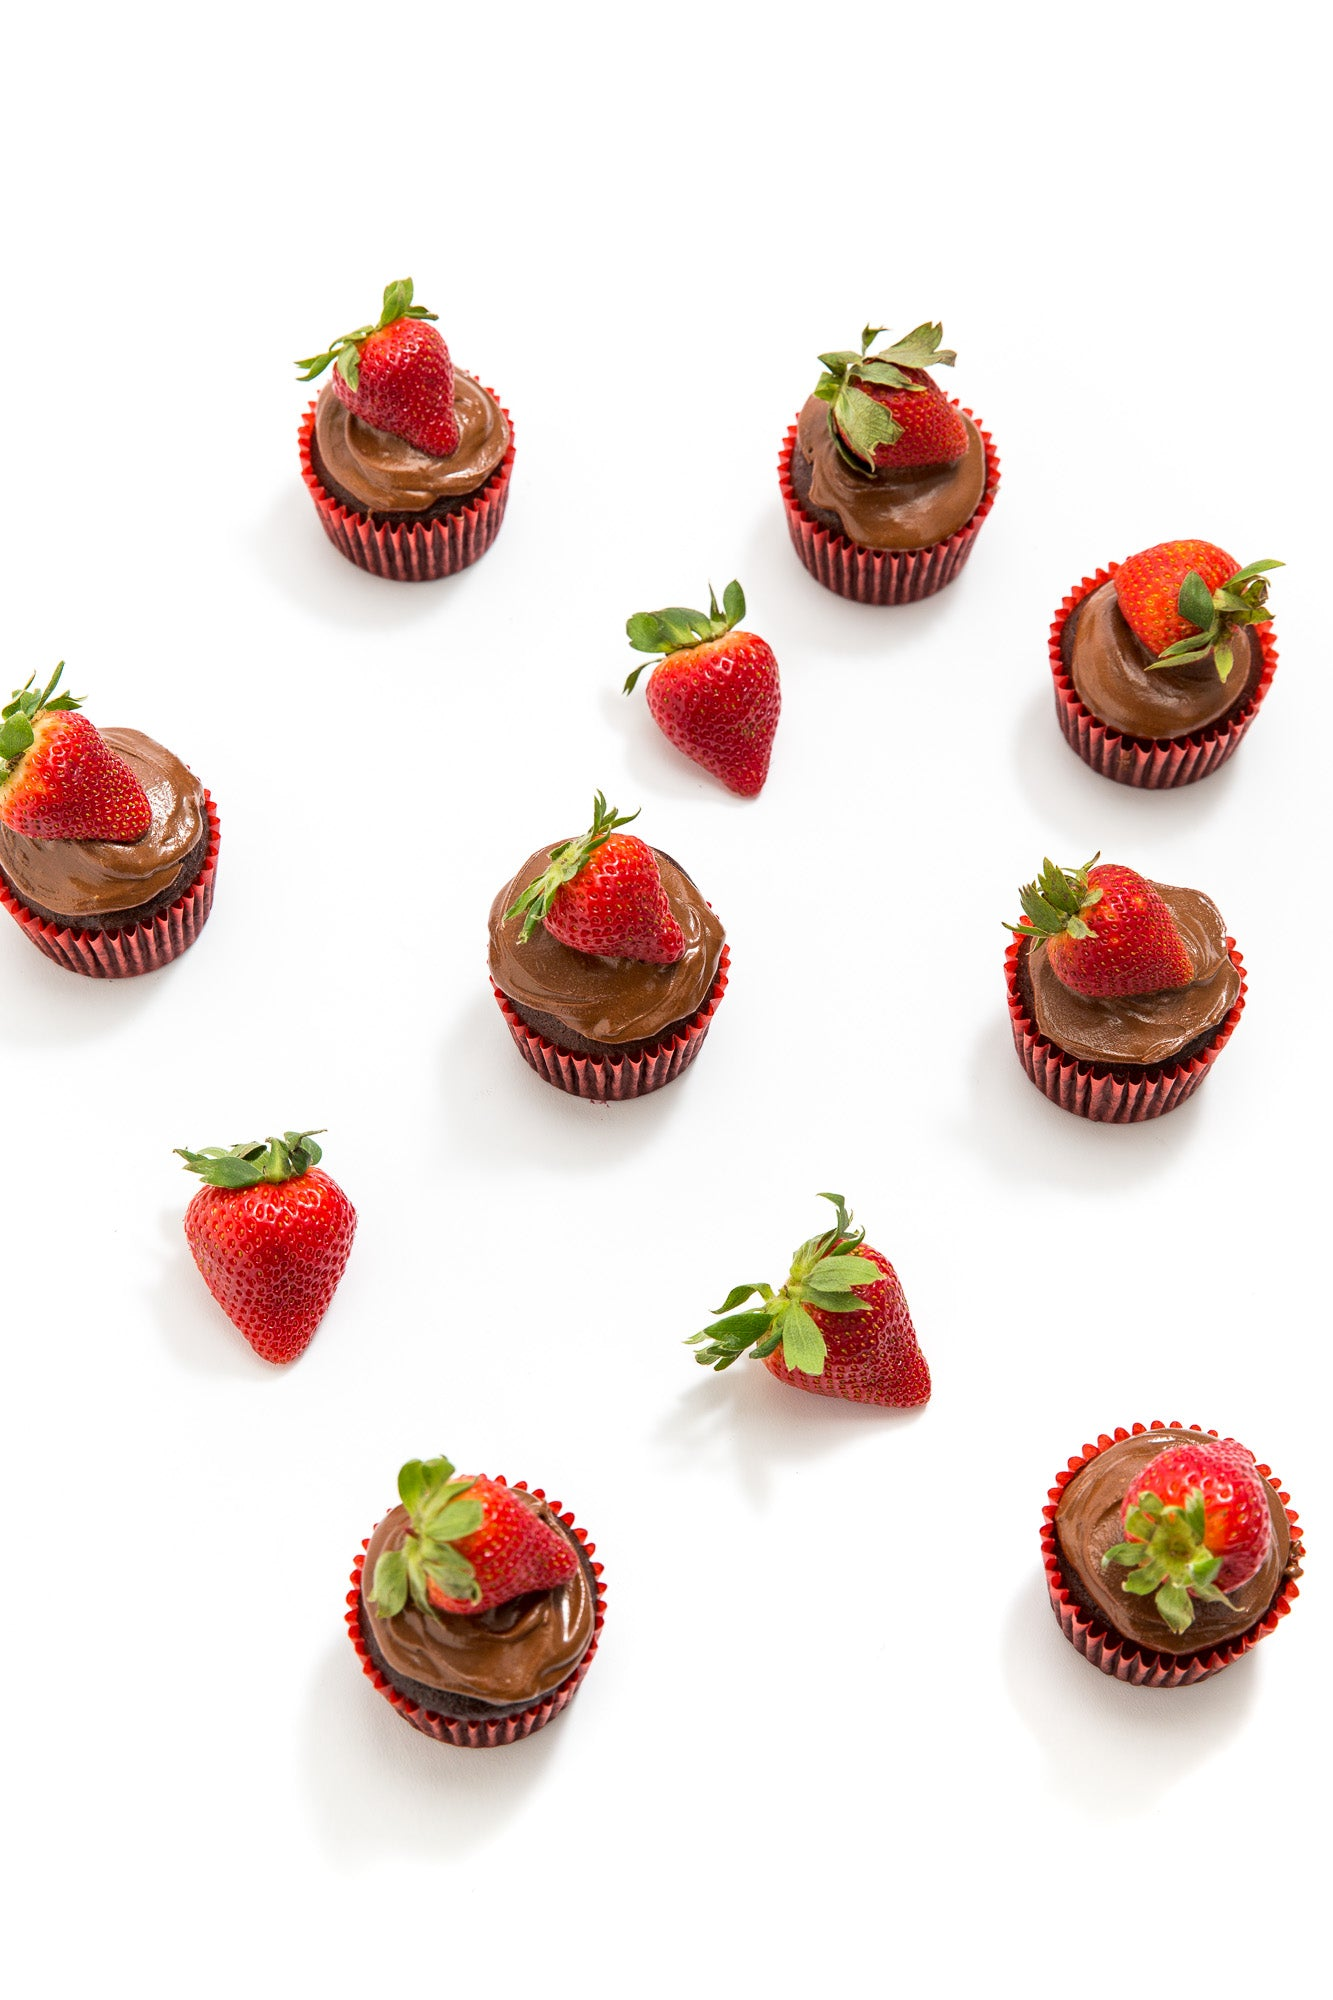 Image from above of eight Miss Jones Baking Co Chocolate Hazelnut Strawberry Cupcakes scattered around a couple of strawberries